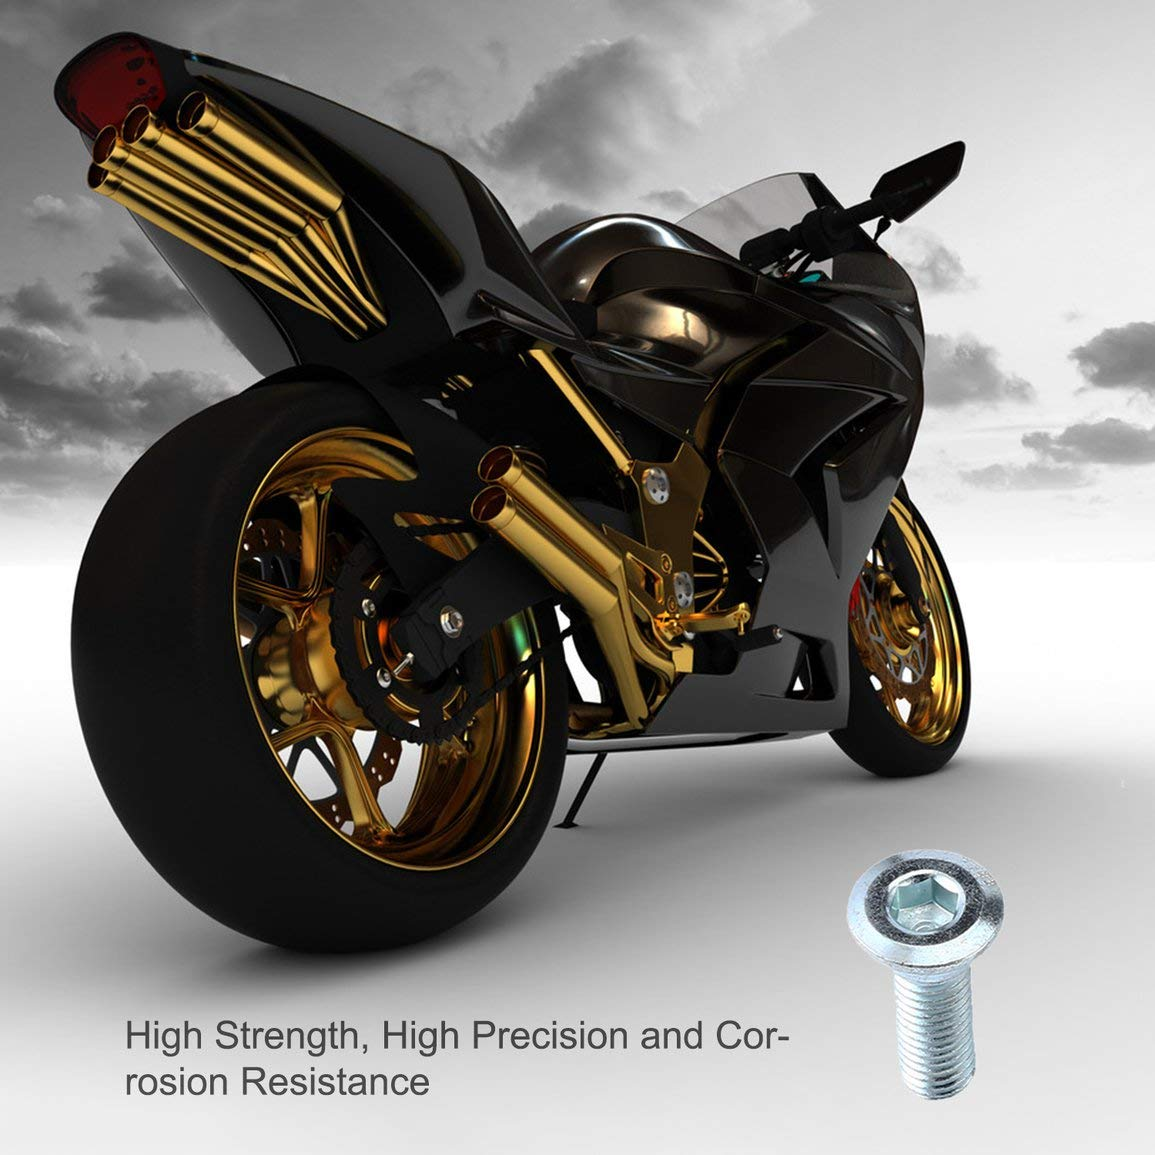 20off-road Motorcycle Kayo160 T8 Ph Small Proud C Disgust Dish Screw Motocross Color:Sliver Bolt of Brake Disc Dirt Pit Bike M8